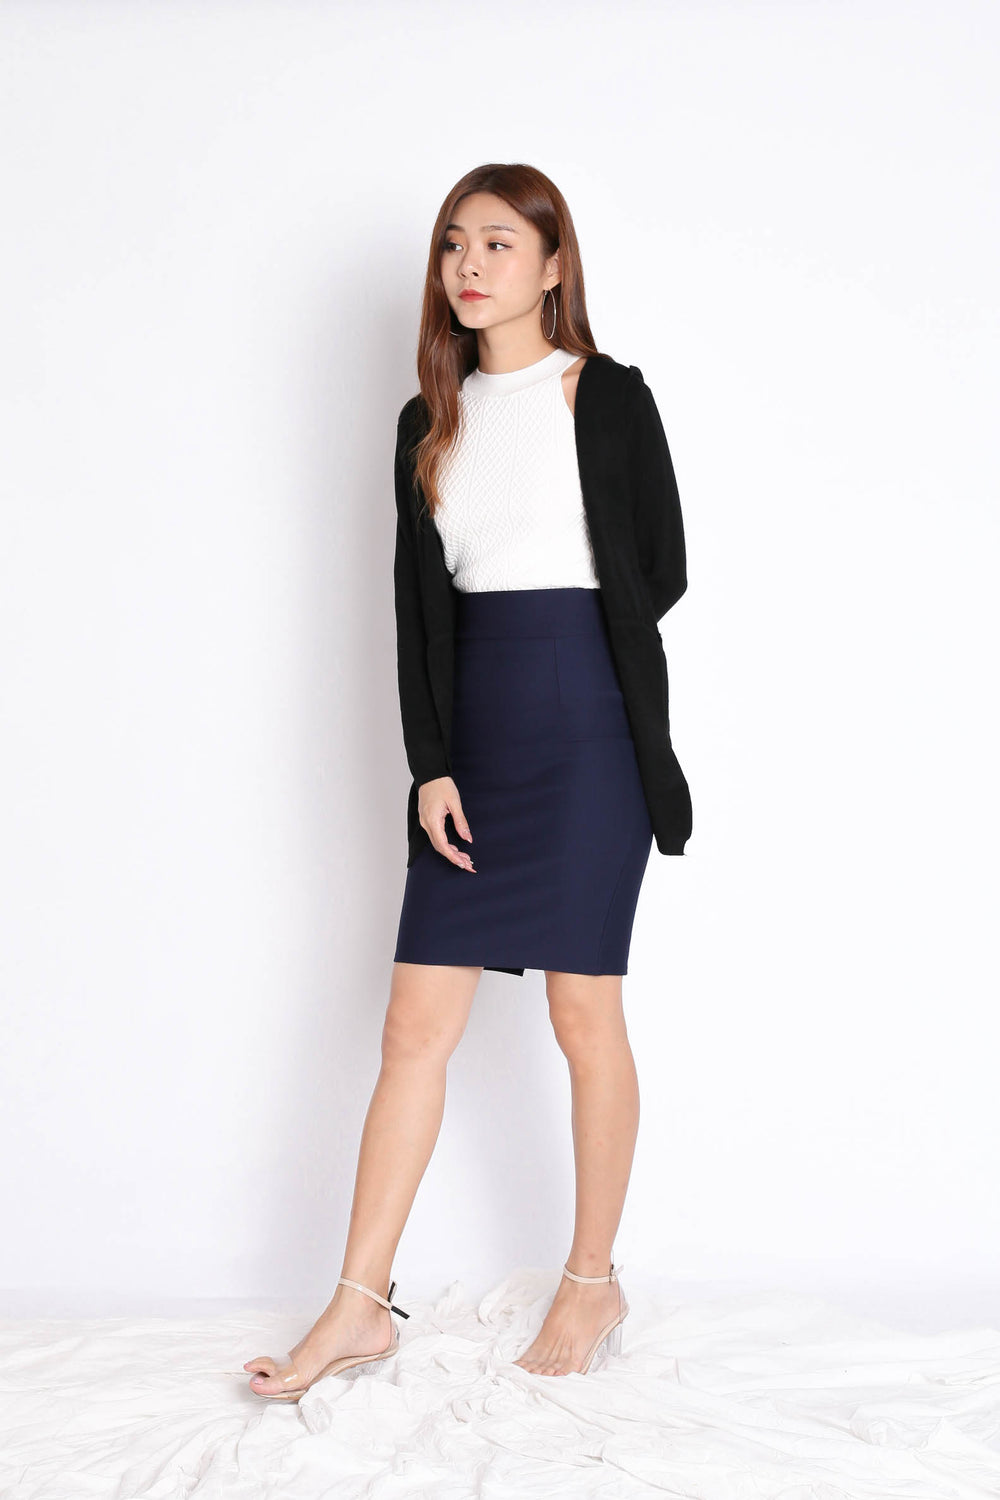 BRAE SOFT KNIT CARDIGAN IN BLACK